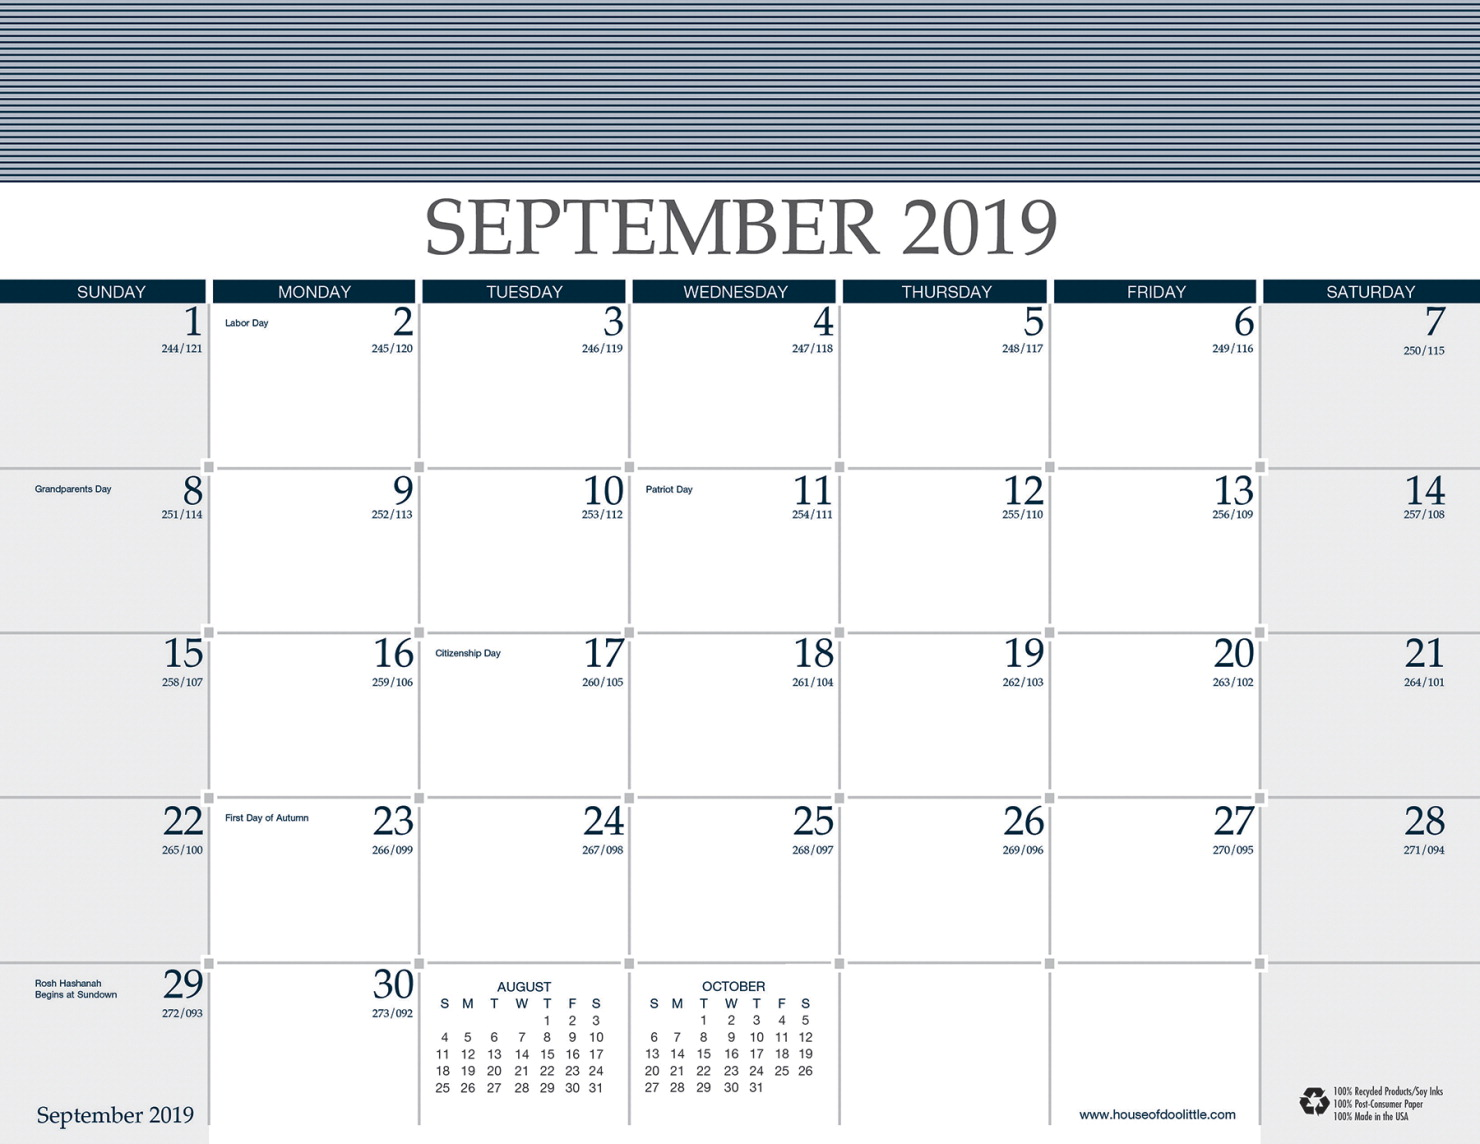 4 Month Calendar 2020 September-December House of Doolittle 16 Month Calendar with Refills, 2019 to 2020